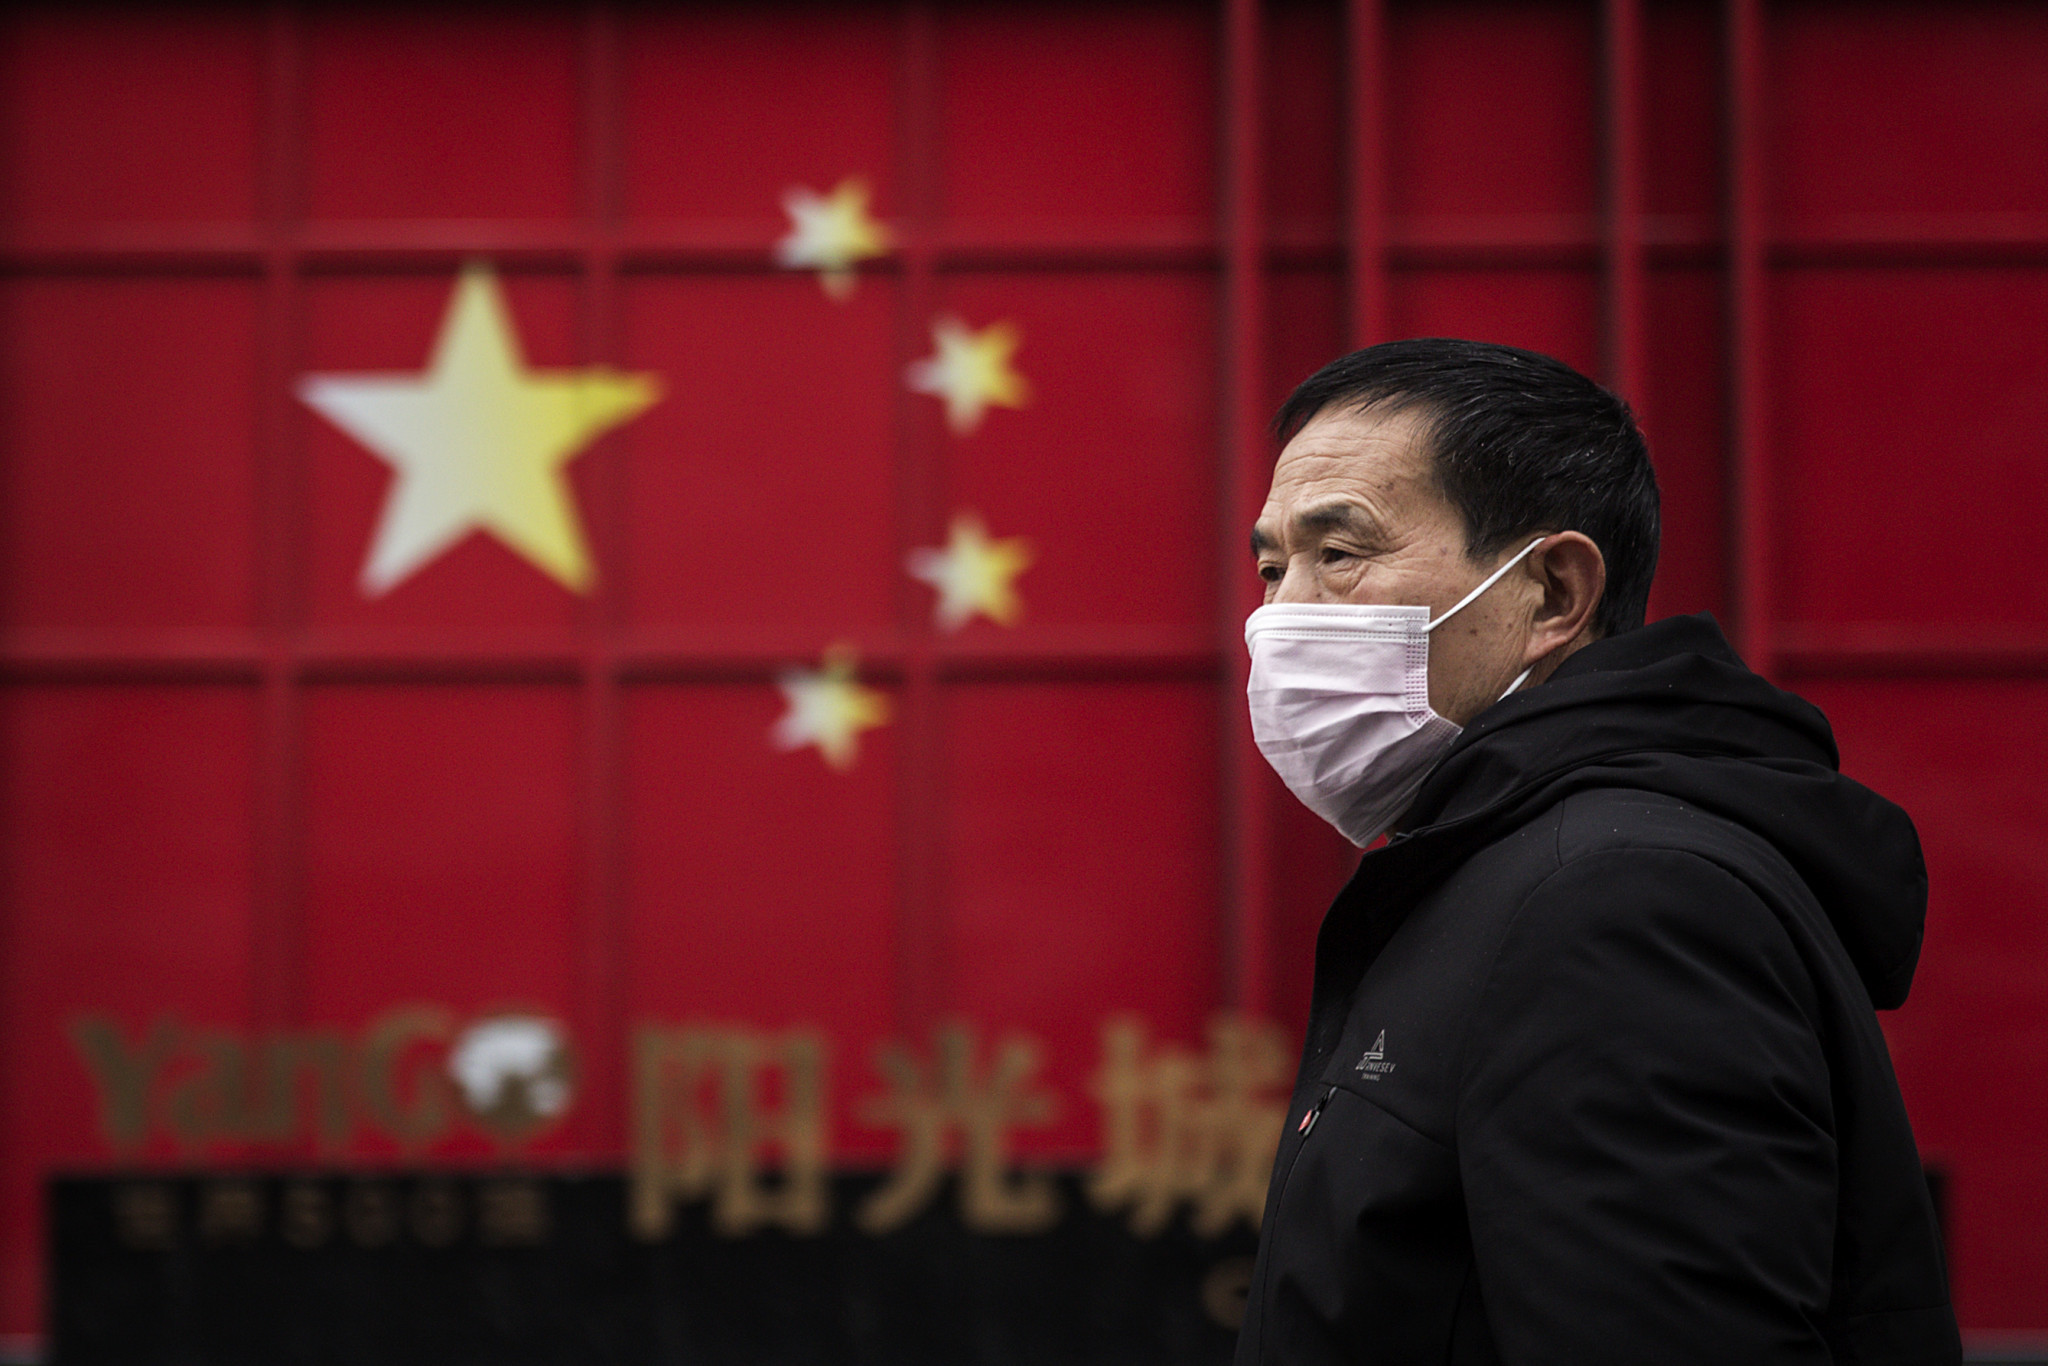 The Chinese Government has cancelled international events for the remainder of 2020 in response to the coronavirus crisis ©Getty Images